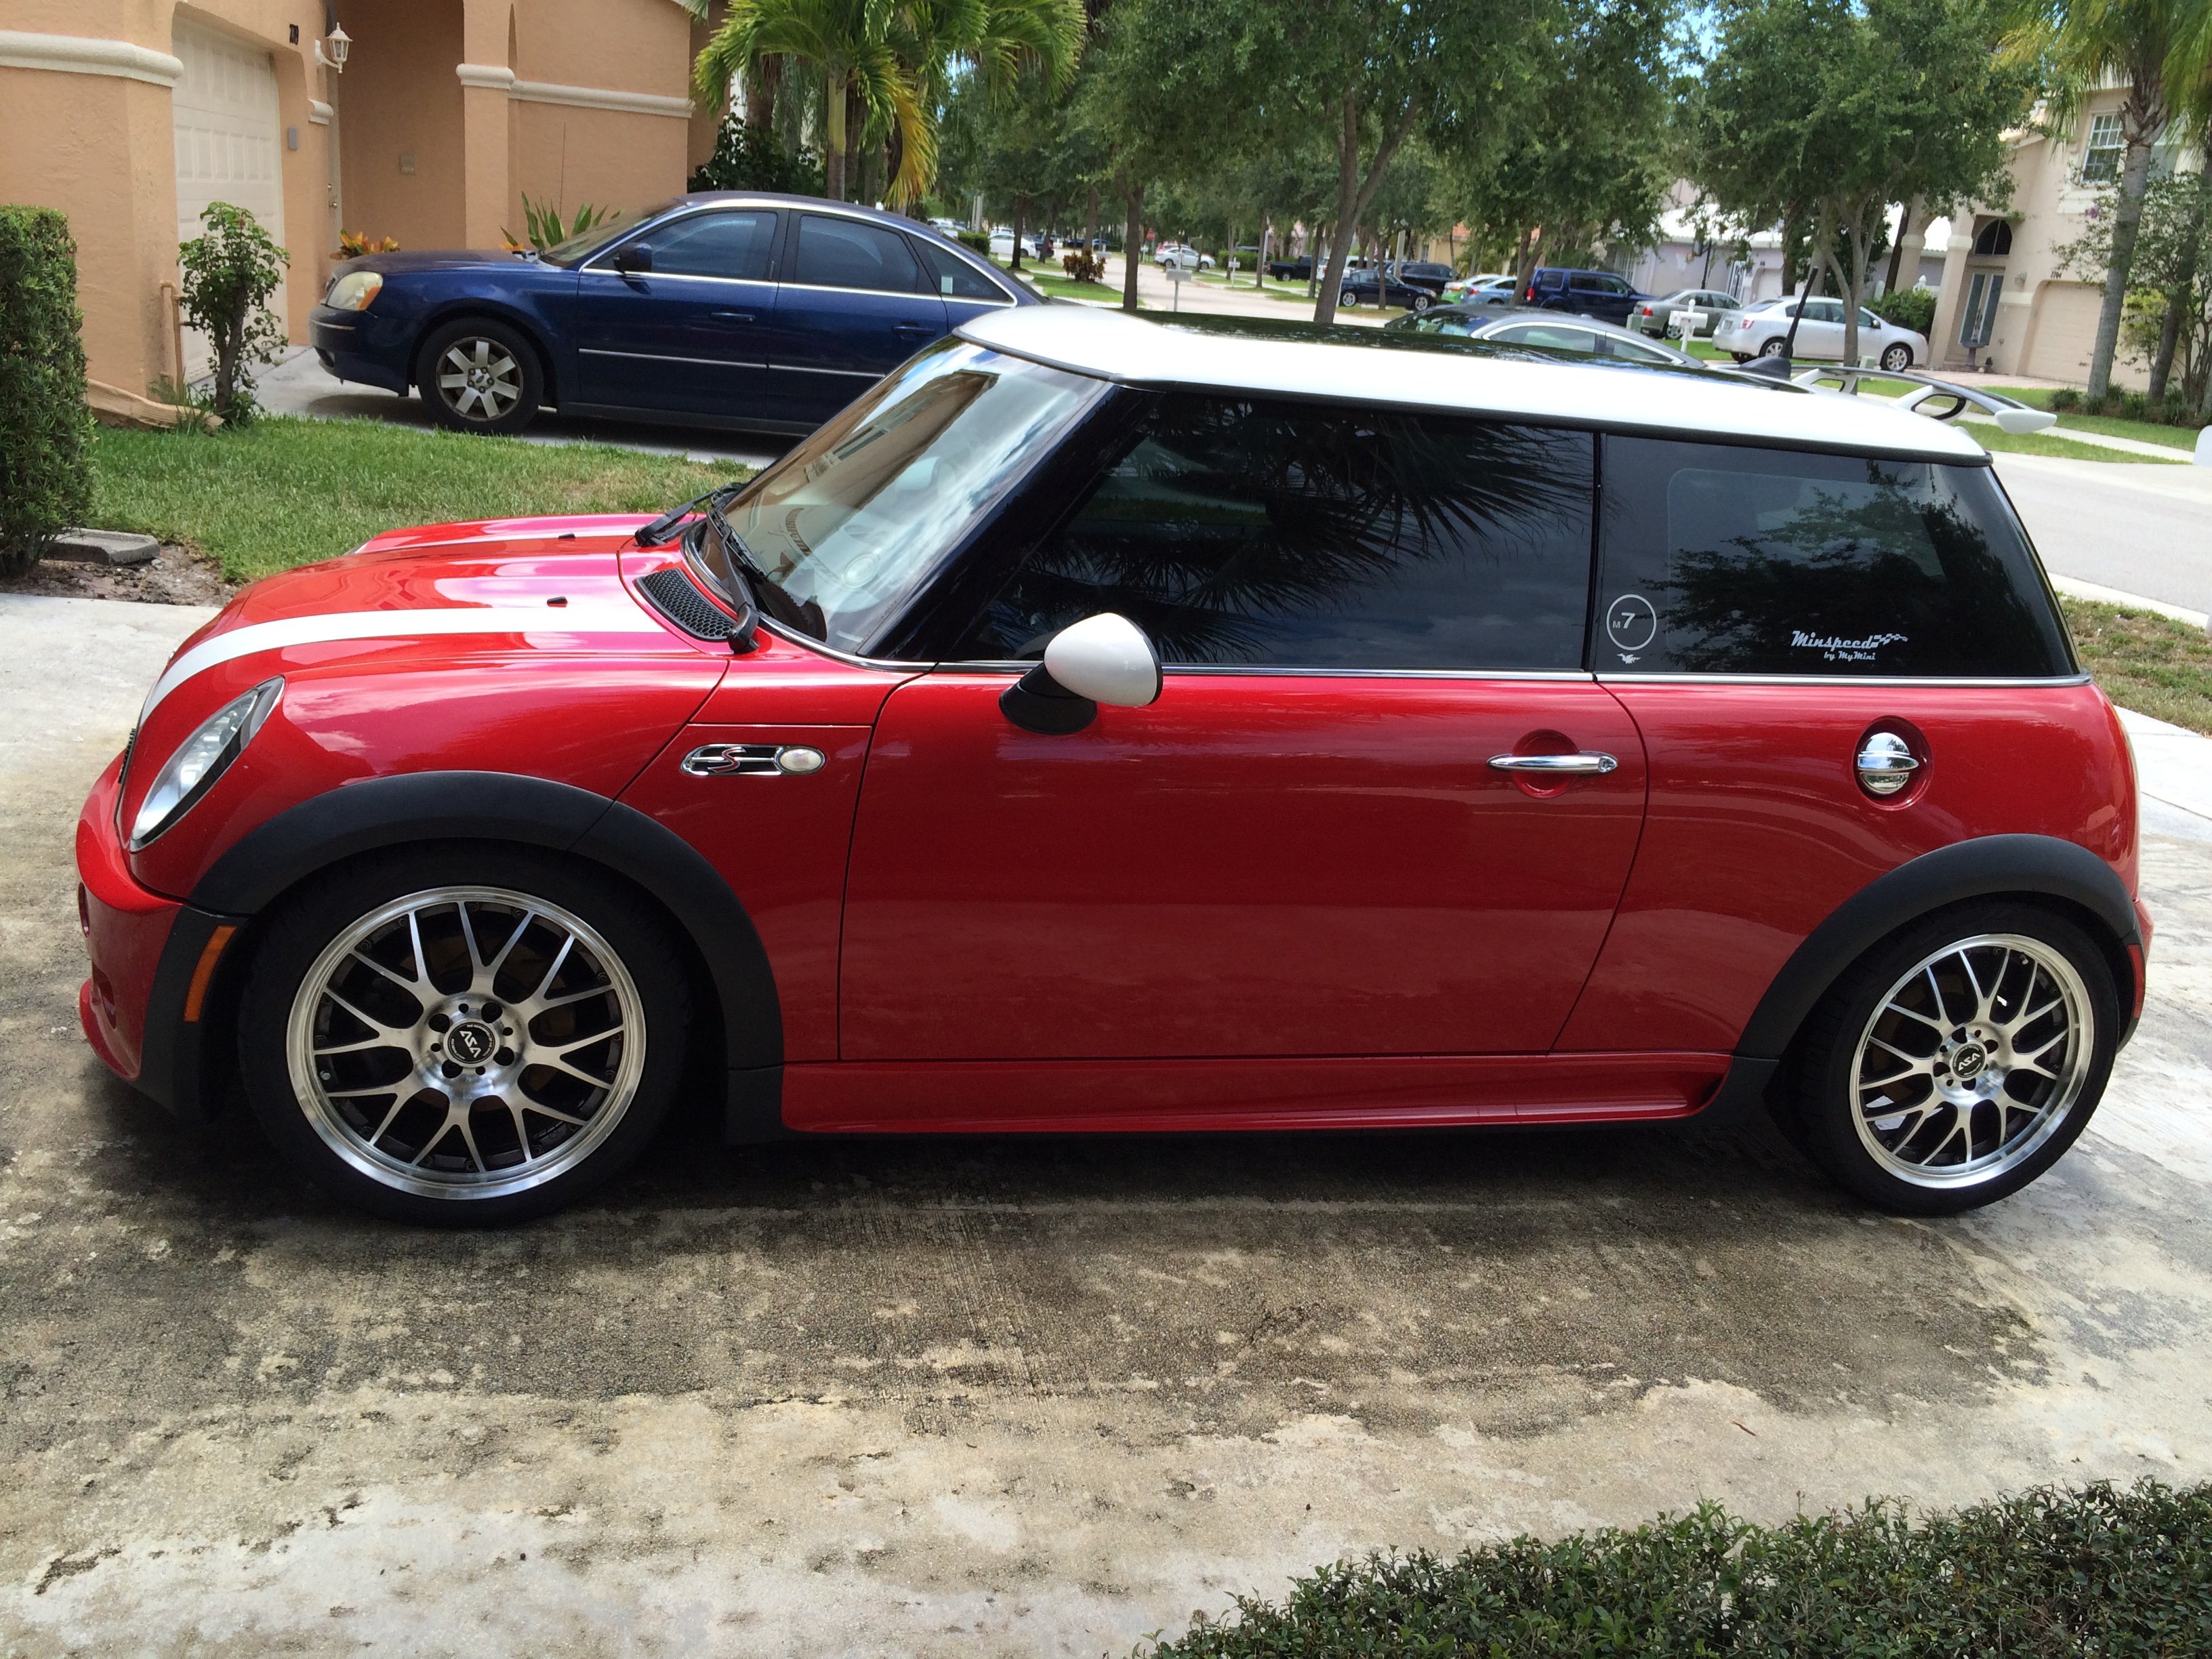 For Sale 2006 Mini Cooper S Motoringfun Com